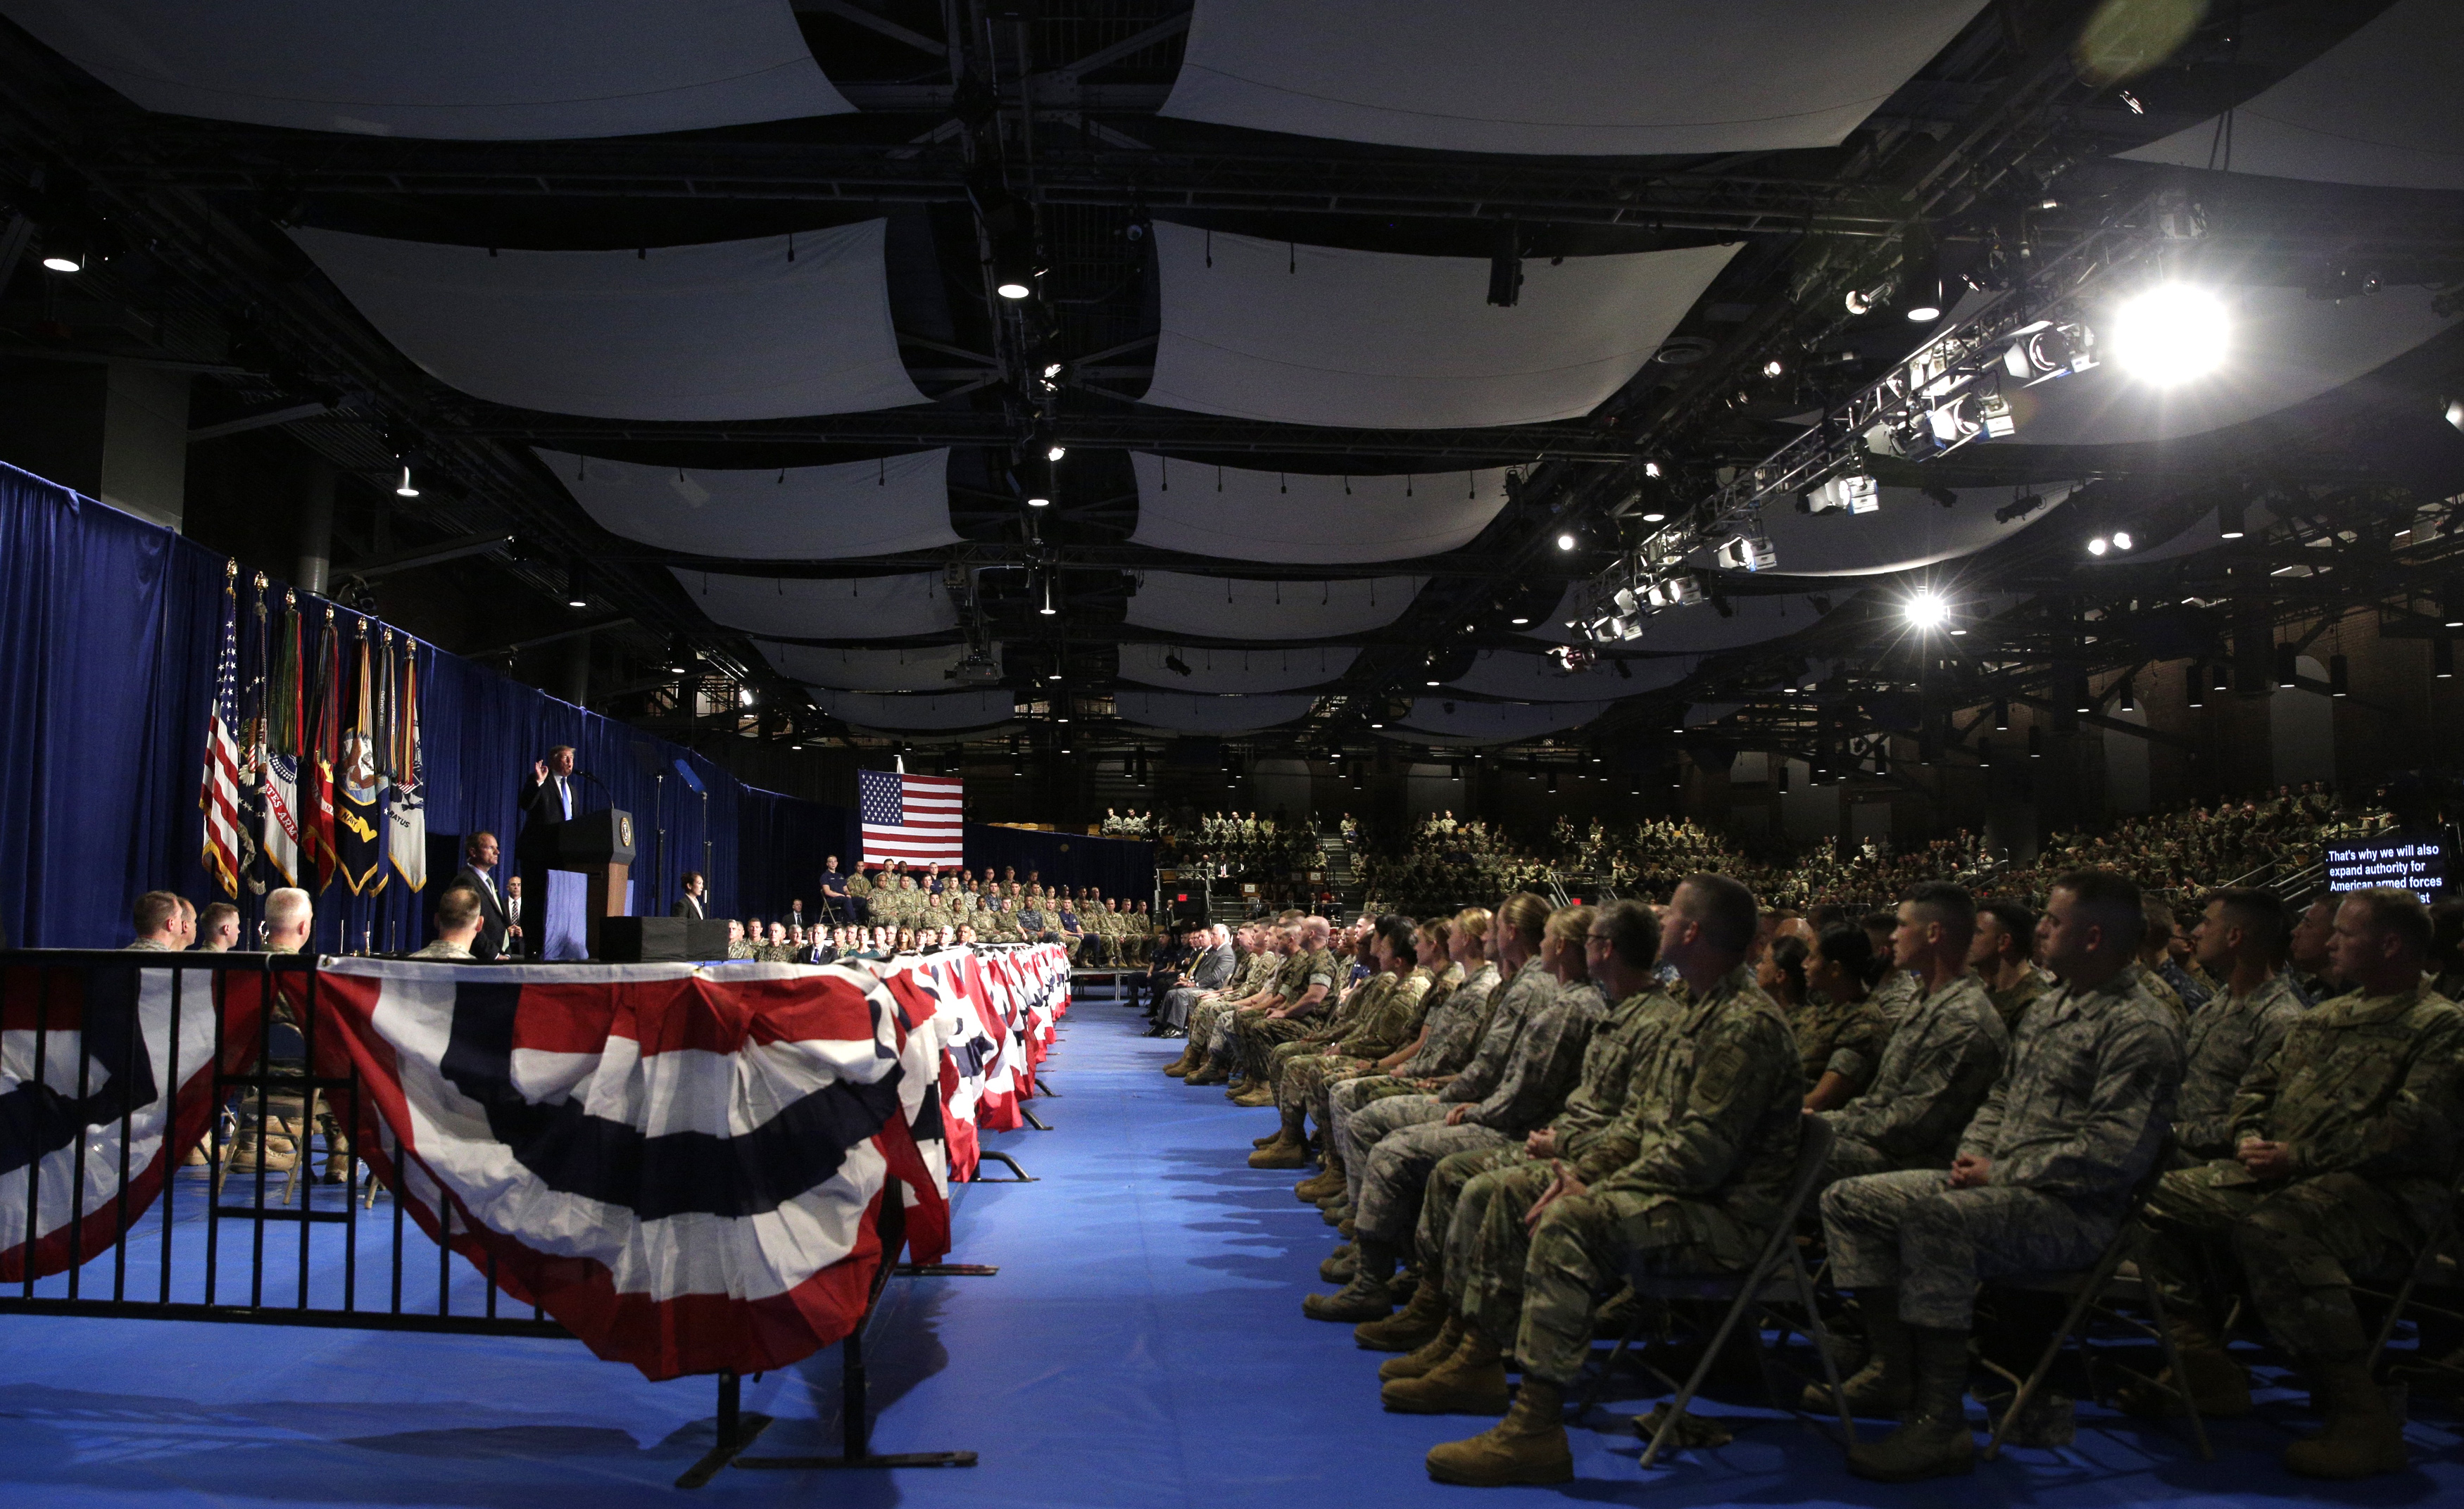 Military personnel watch as U.S. President Donald Trump (L) announces his strategy for the war in Afghanistan during an address to the nation from Fort Myer, Virginia, U.S., August 21, 2017. REUTERS/Joshua Roberts - RTS1CQS1